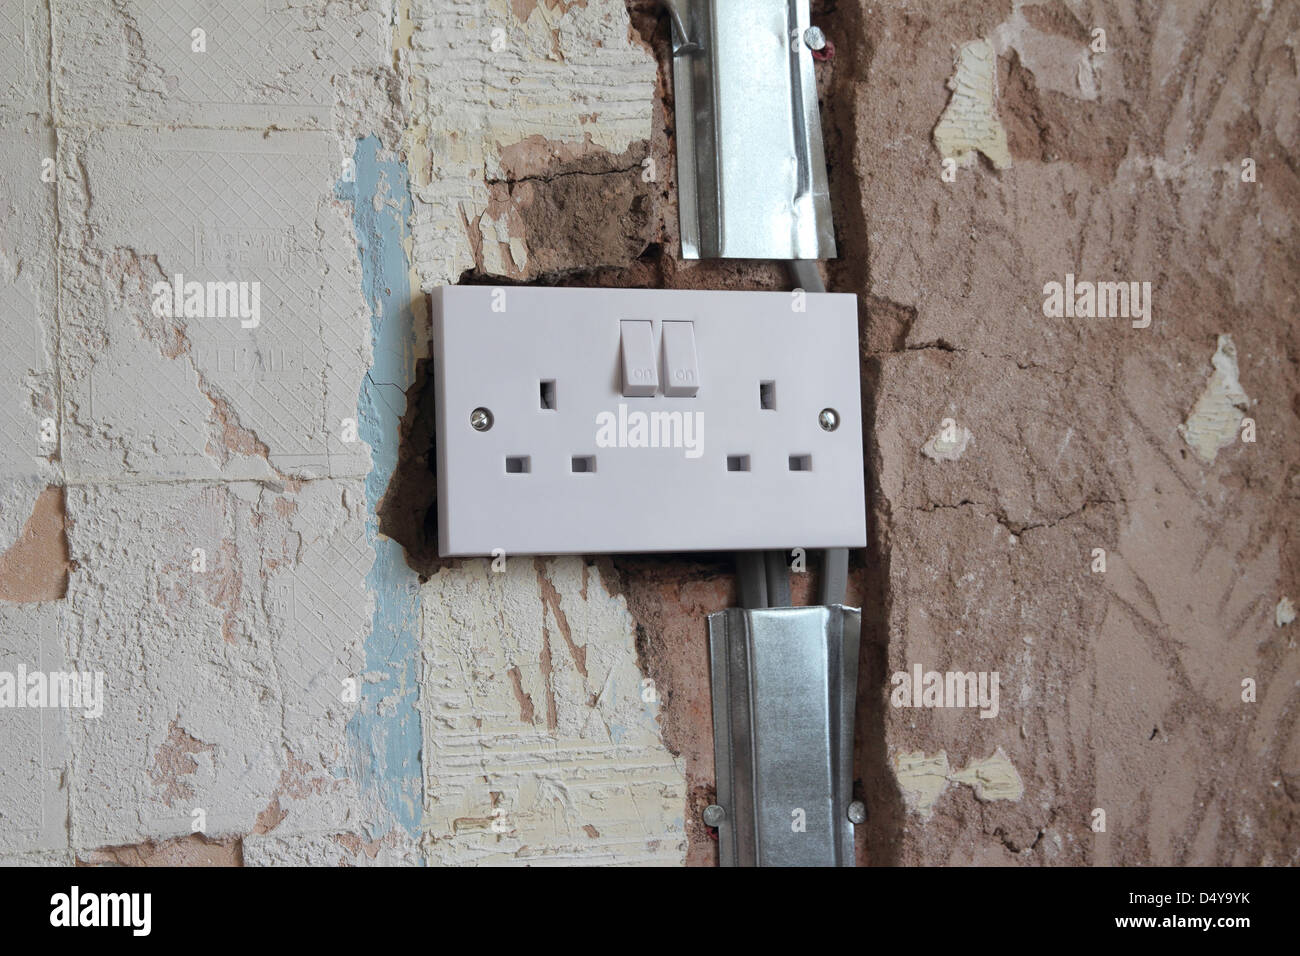 Rewire Stock Photos & Rewire Stock Images - Alamy